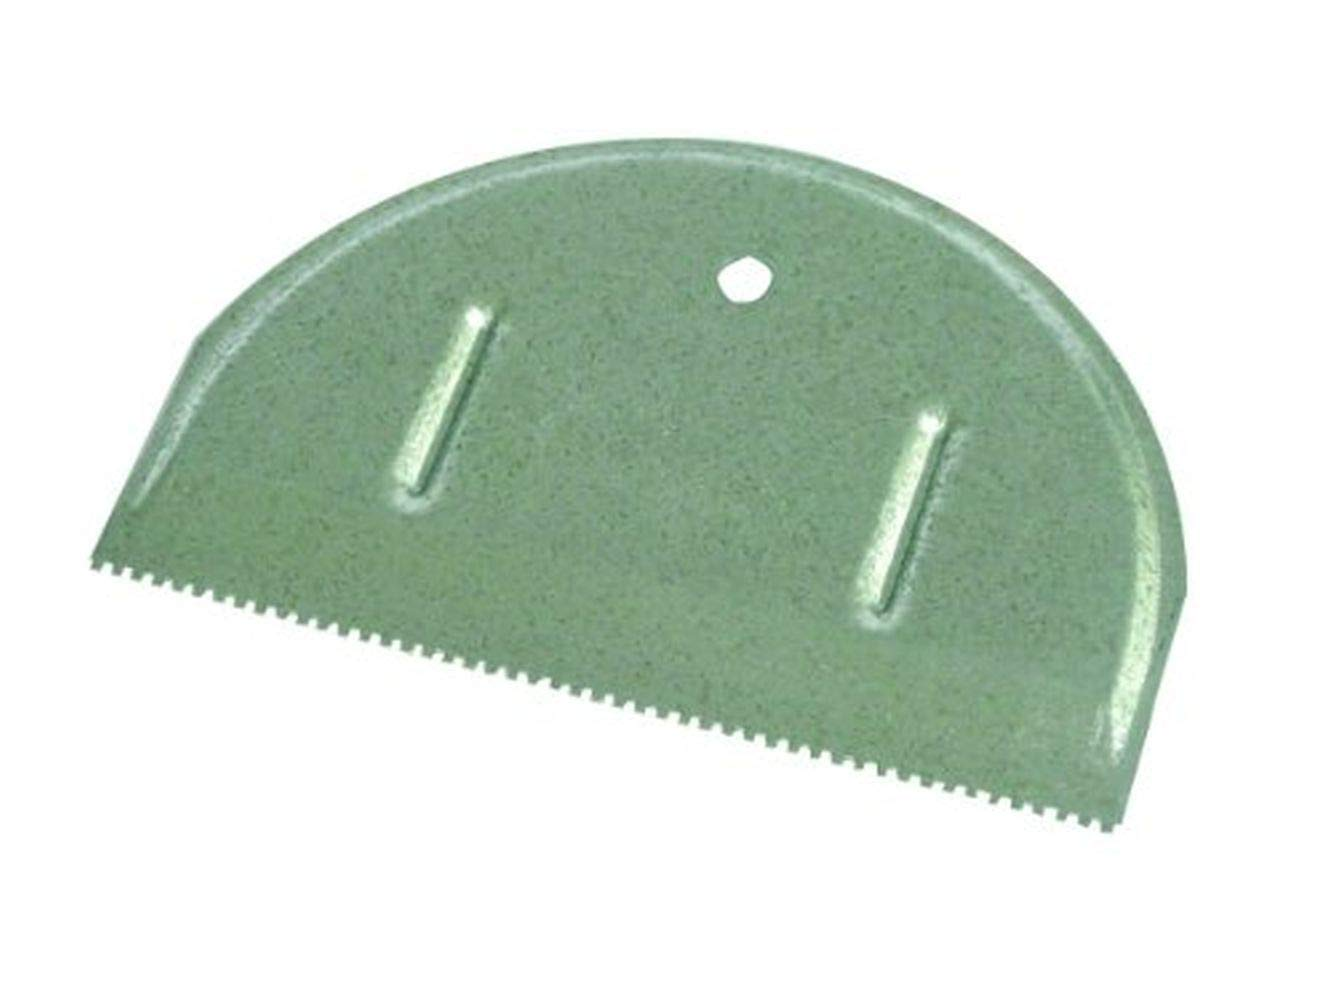 QLT By MARSHALLTOWN 977 6-Inch by 4-Inch Notched Spreader